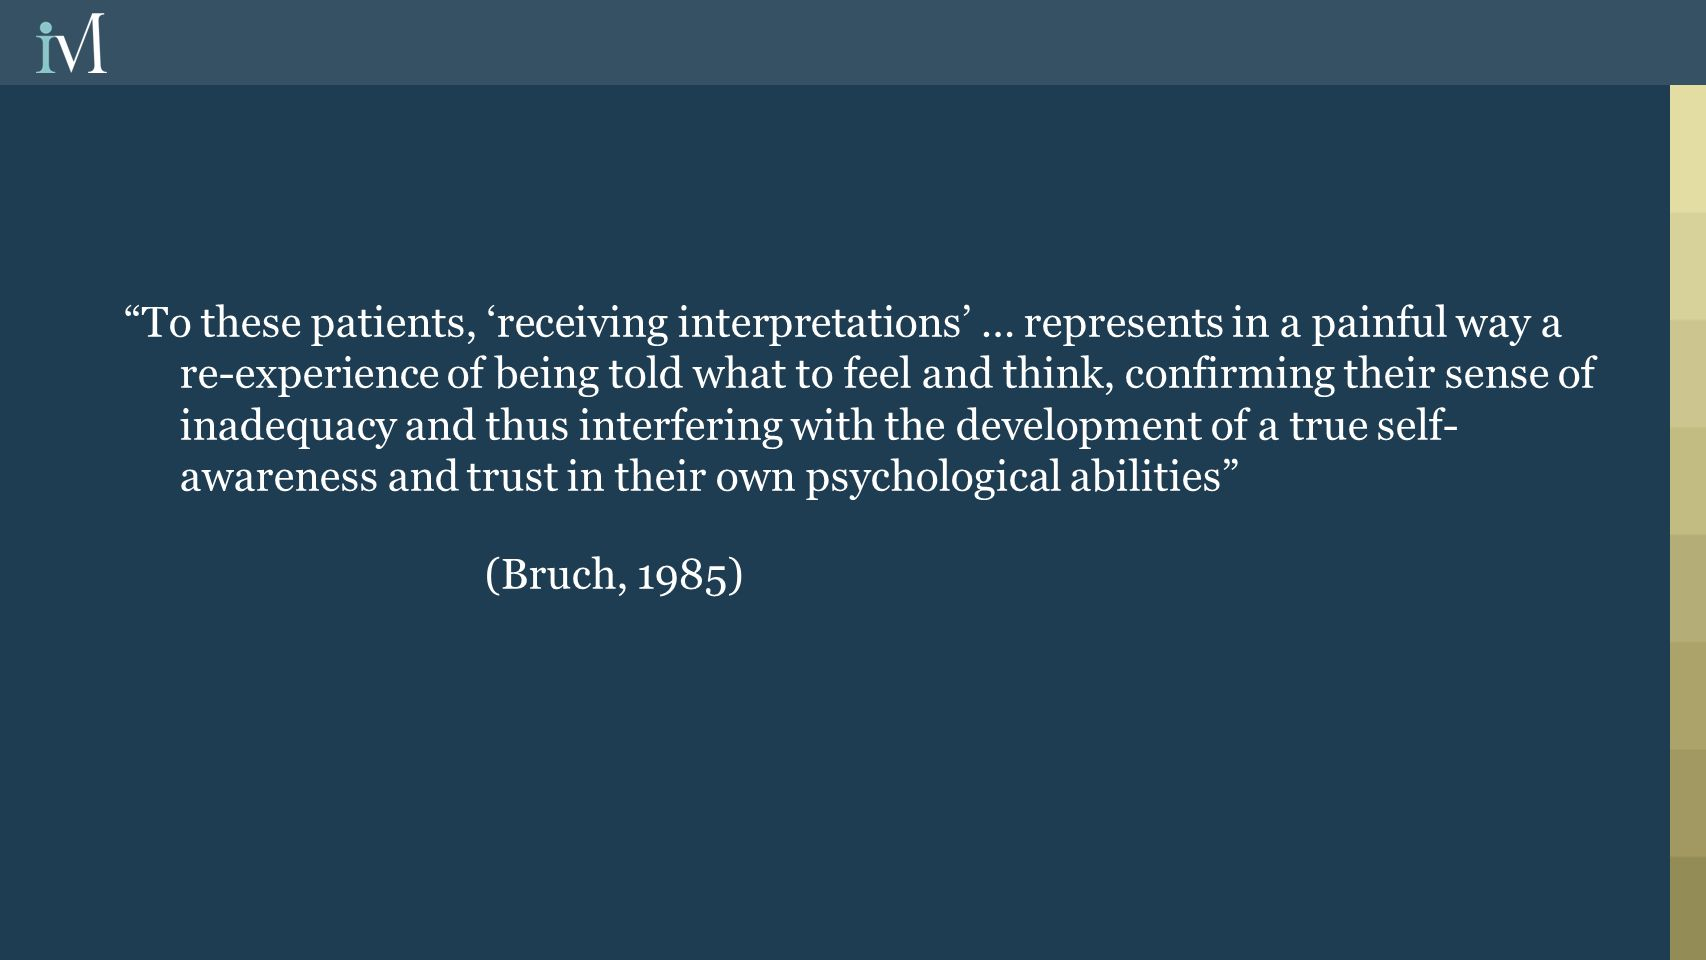 To these patients, 'receiving interpretations' … represents in a painful way a re-experience of being told what to feel and think, confirming their sense of inadequacy and thus interfering with the development of a true self- awareness and trust in their own psychological abilities (Bruch, 1985)